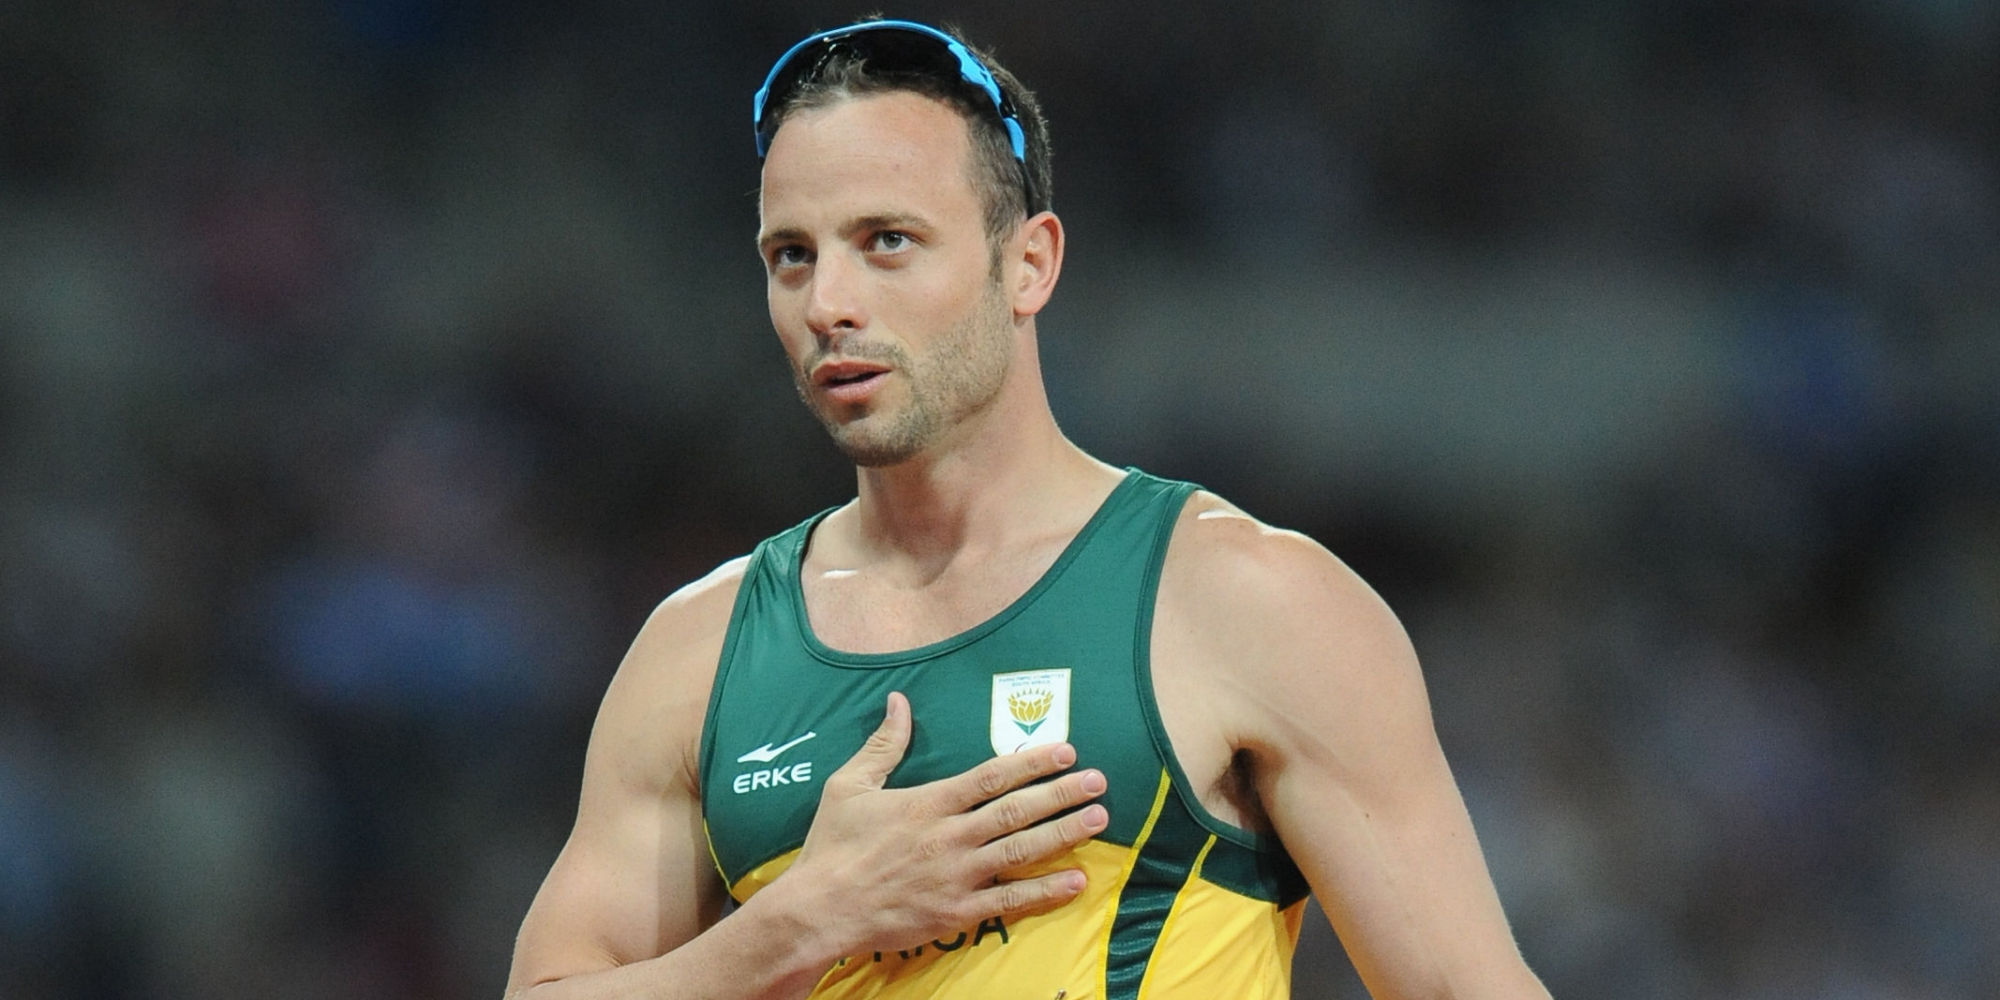 Oscar Pistorius Blood Curdling Screams Witness n 4888823 further The Power Of The Tour De France Performance Analysis Groundwork also The World Record Suspicion Survey And Some Related Thoughts furthermore Bild Oscar Pistorius 5107 as well Oscar Pistorius Has Pay Reeva Steenk s Dad Testifies N591766. on oscar pistorius times